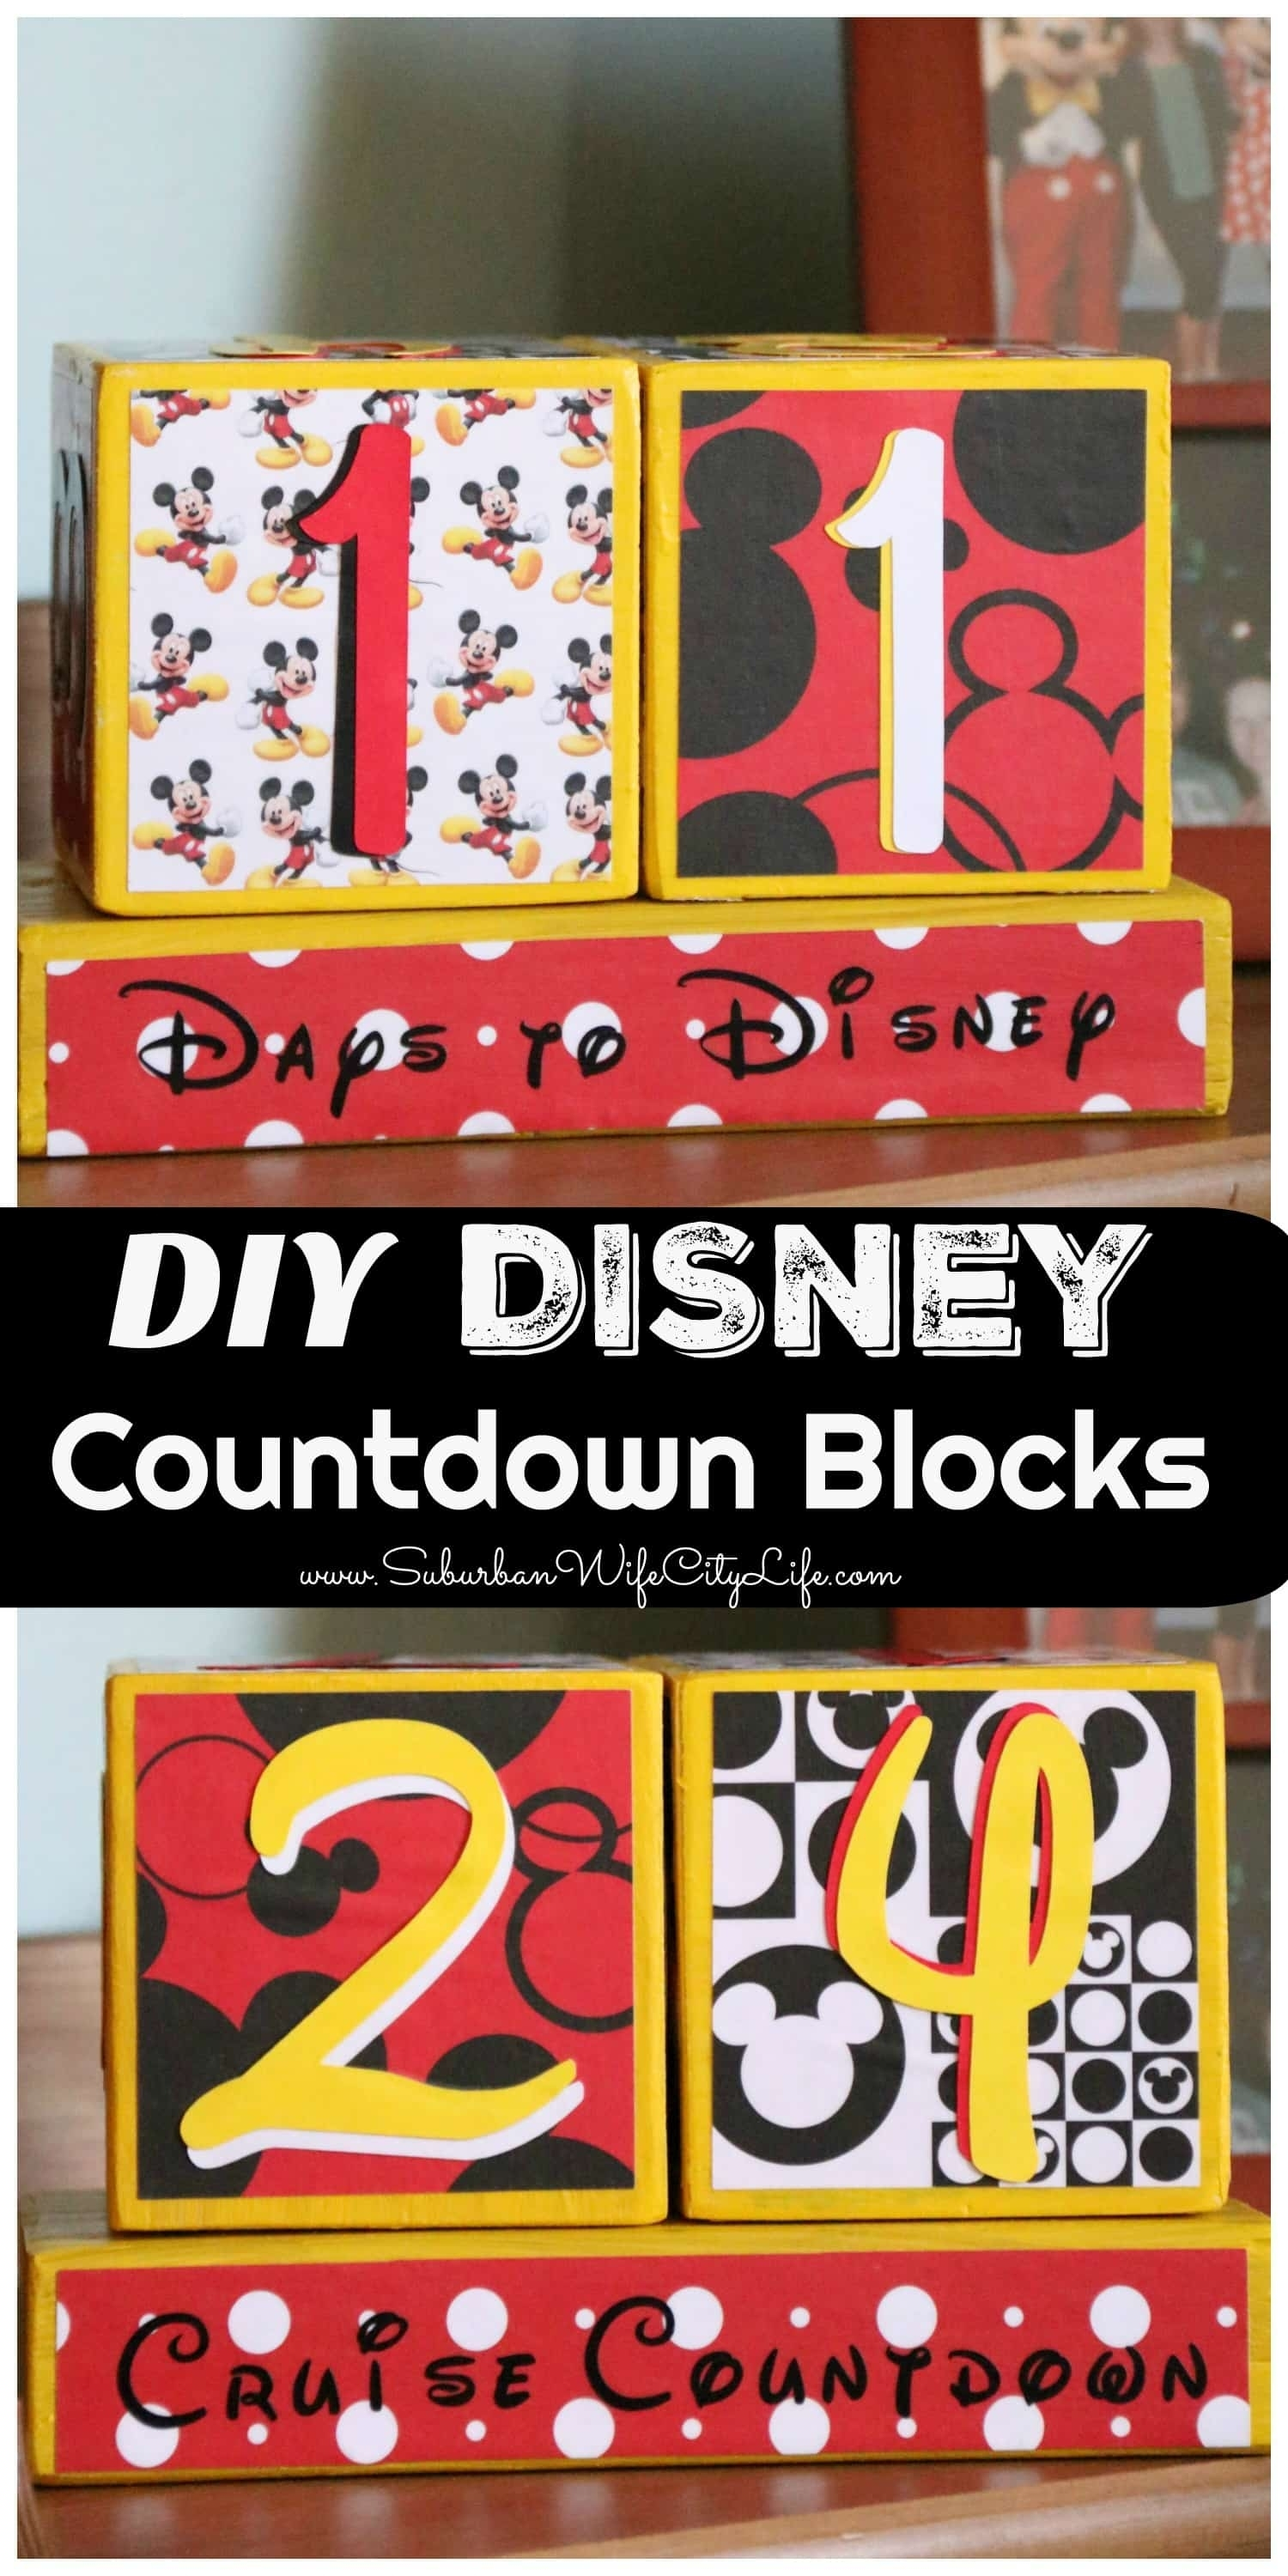 Disney Countdown Blocks | Suburban Wife, City Life inside Disney Cruise Countdown Calendar Out Of Paper